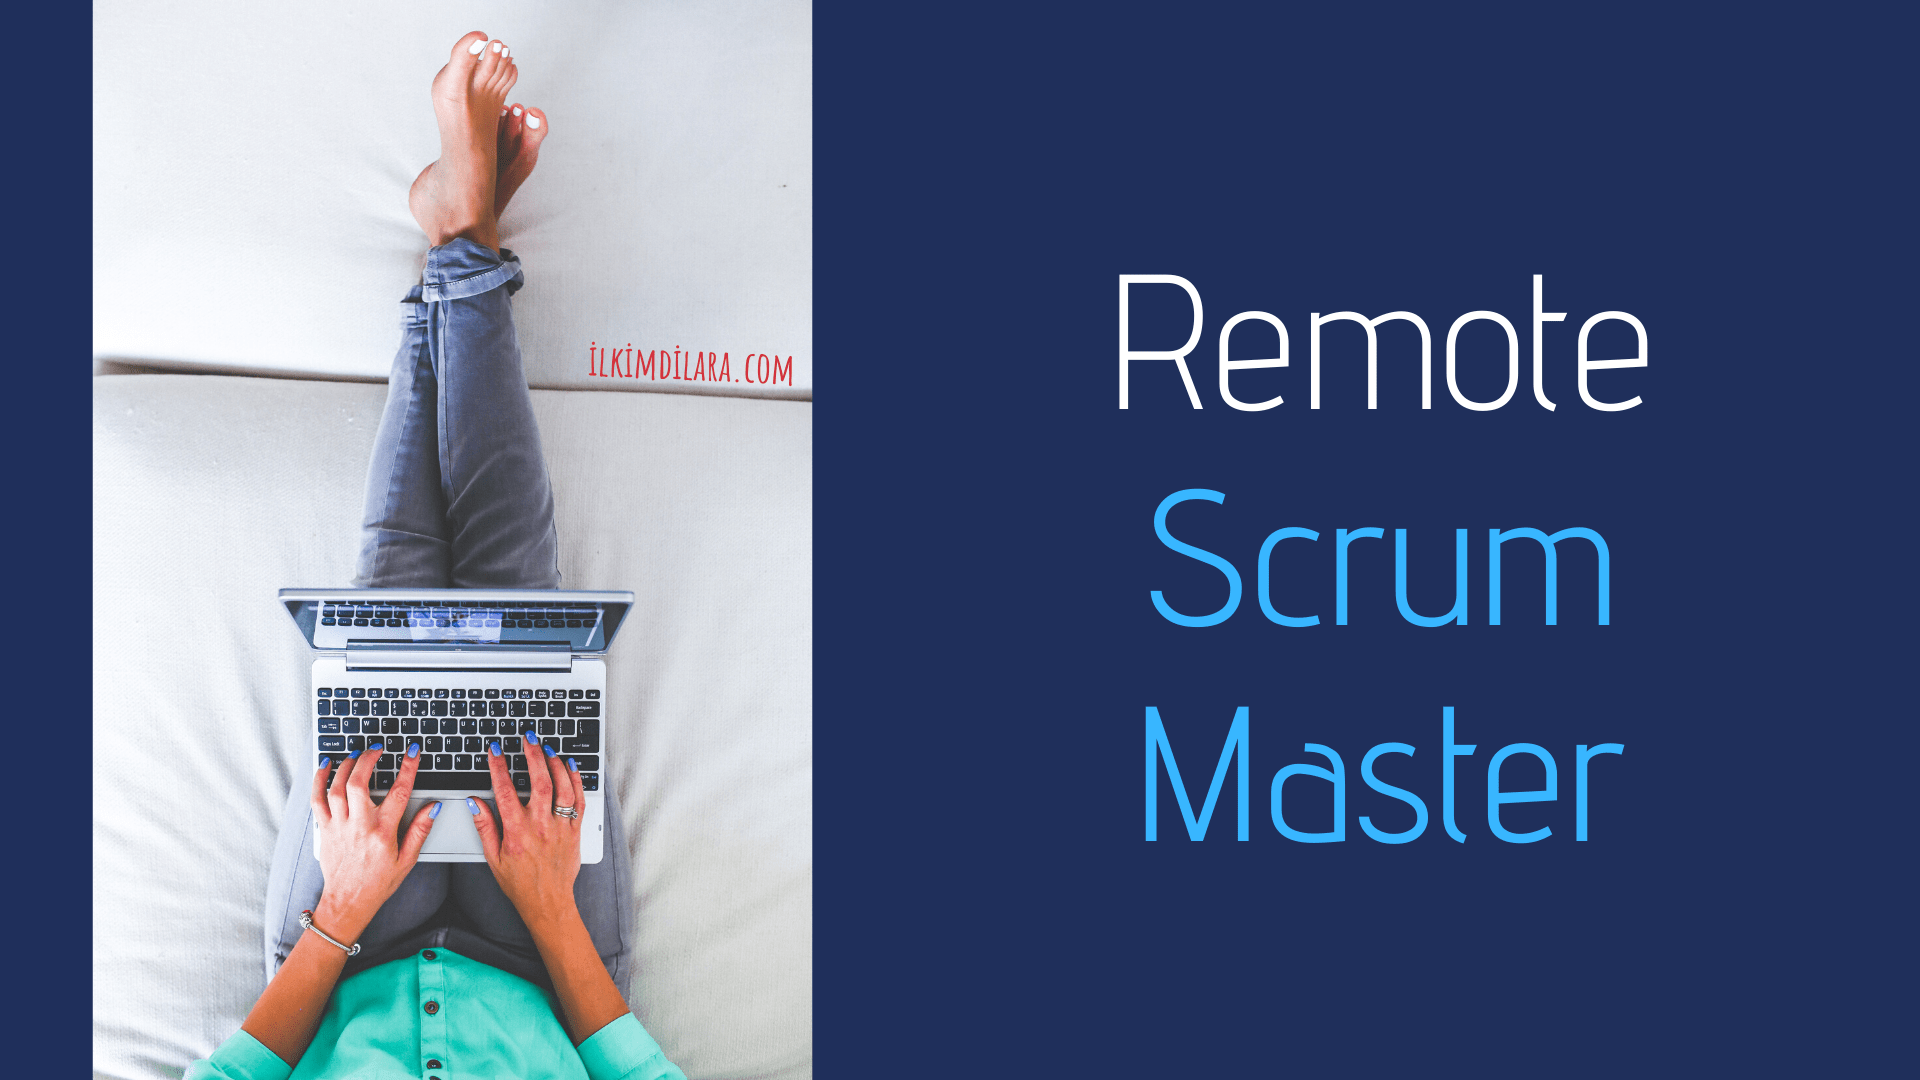 Remote Scrum Master